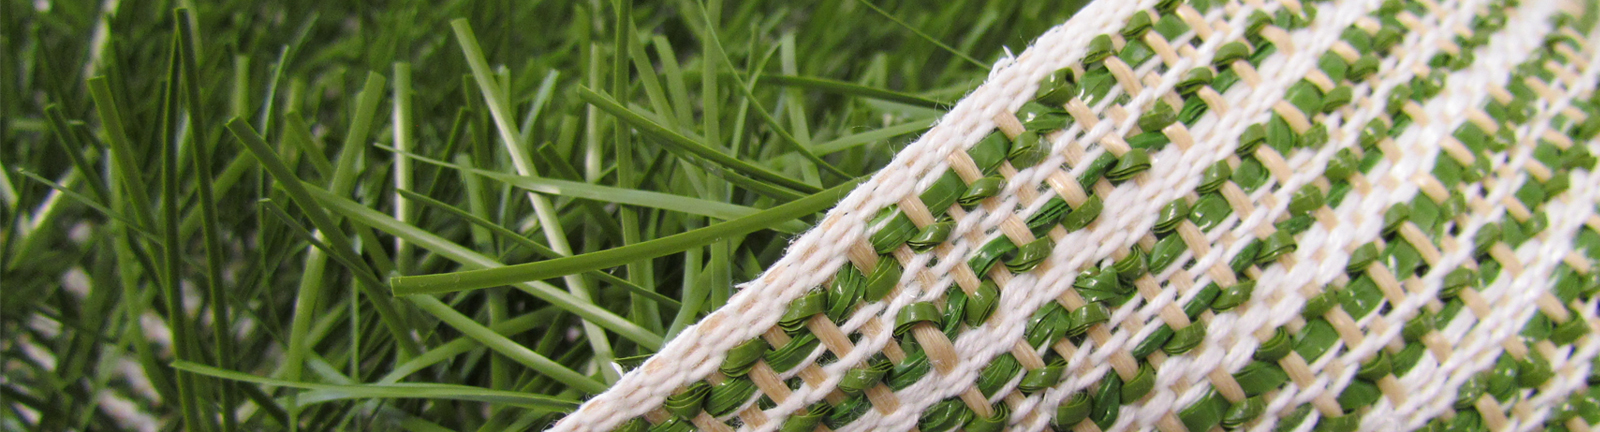 Act Global Xtreme Grass Hybrid Turf Helps Natural Grass